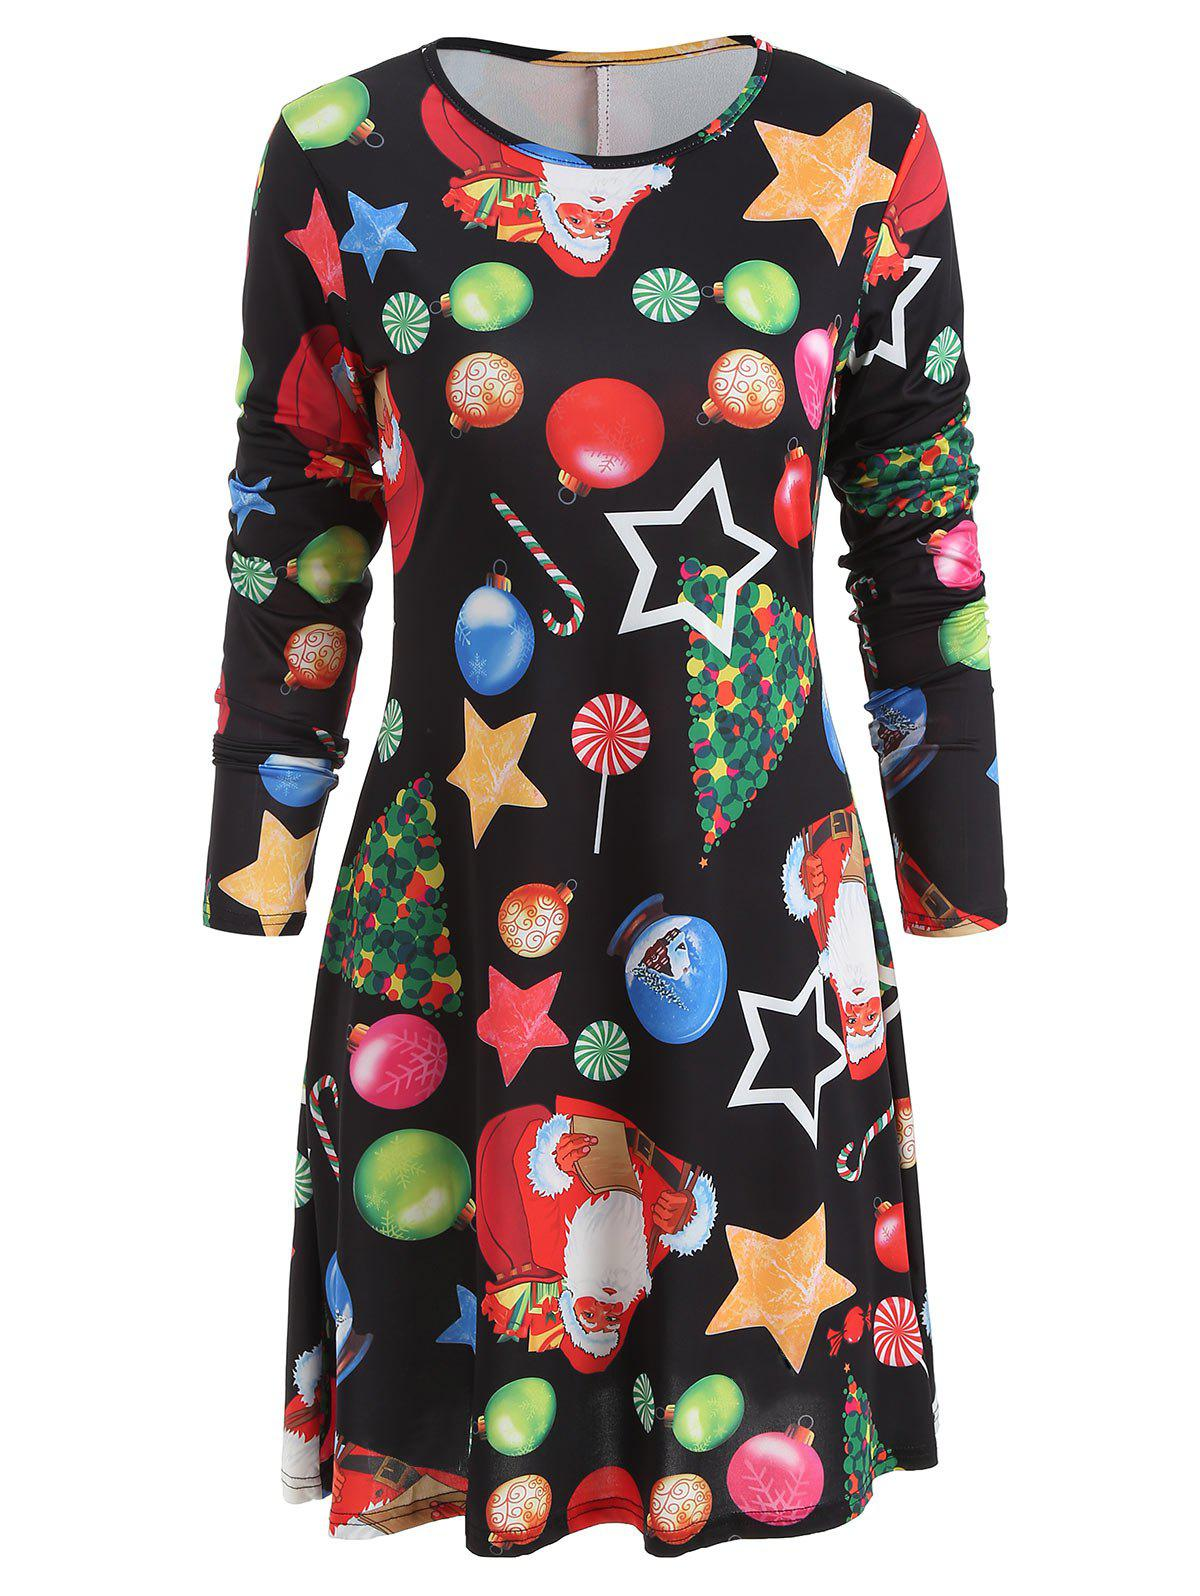 e3b5a0f90066 44% OFF   2018 Christmas Star Print Trapeze Dress In Black 2xl ...